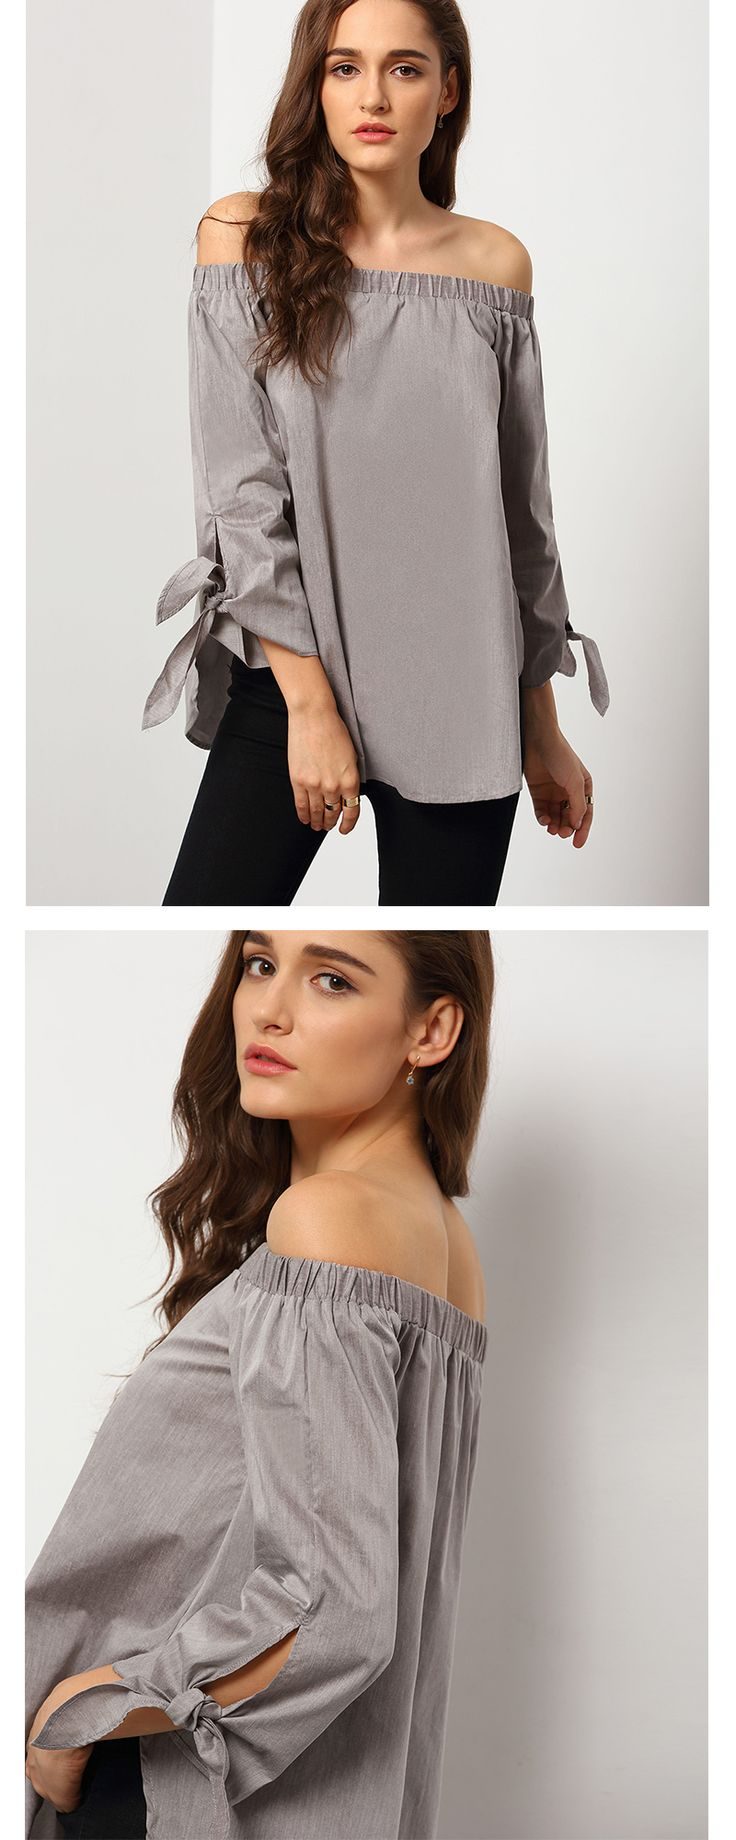 The Great Outfits : Grey Long Sleeve Off The Shoulder Knotted Blouse with black pants. Street Fashion!!